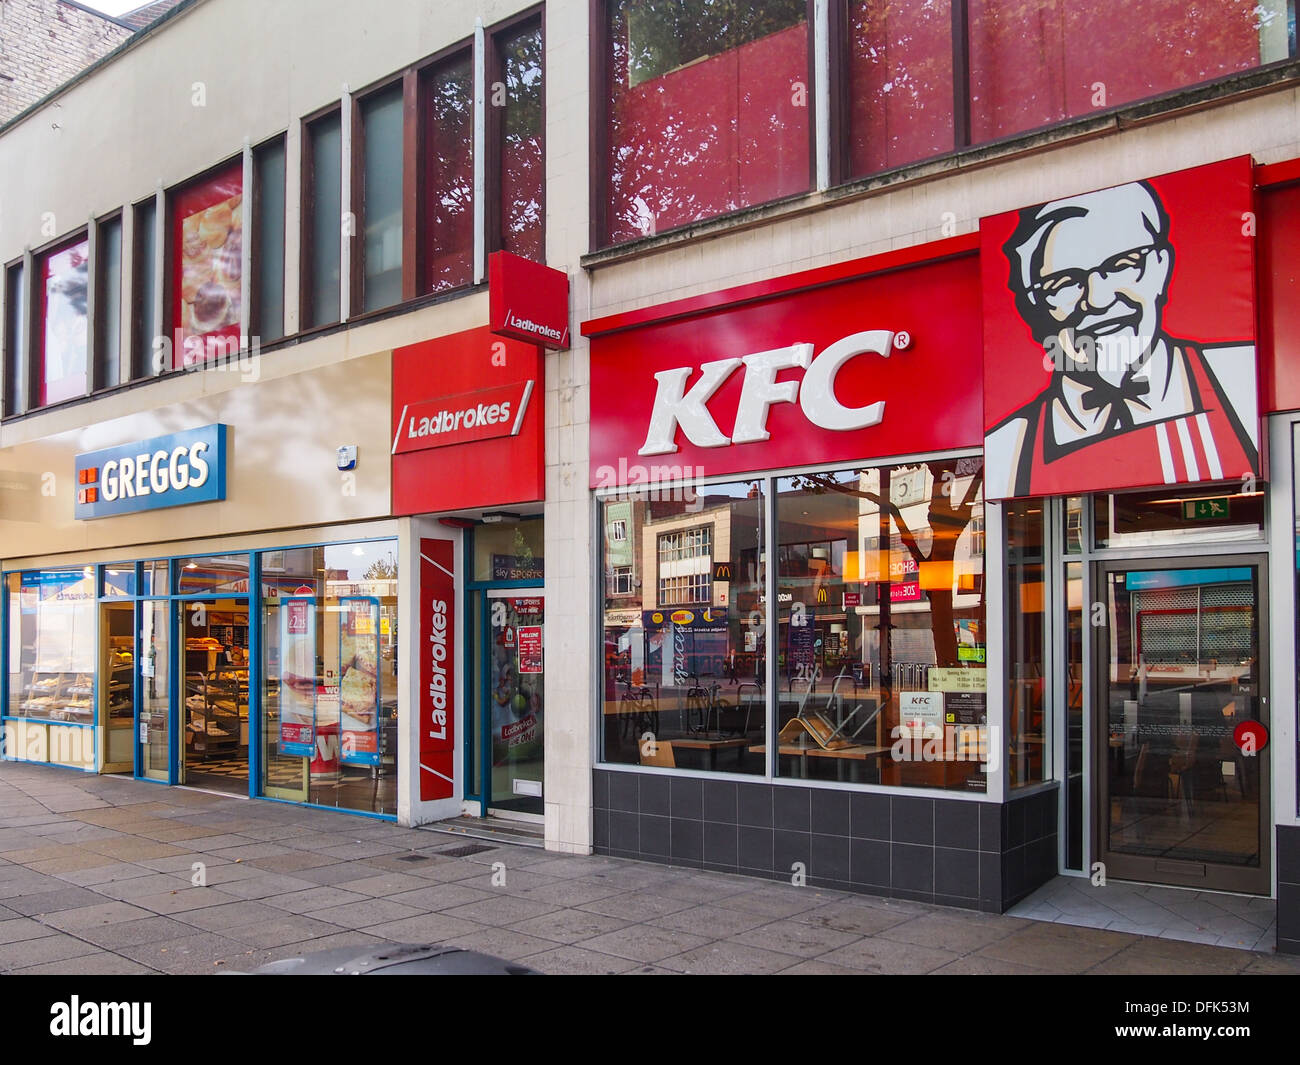 fast food in uk The number of unhealthy fast food takeaways on the nation's high streets has soared over the past two decades, with most opening in the poorest parts of the country, according to new research.